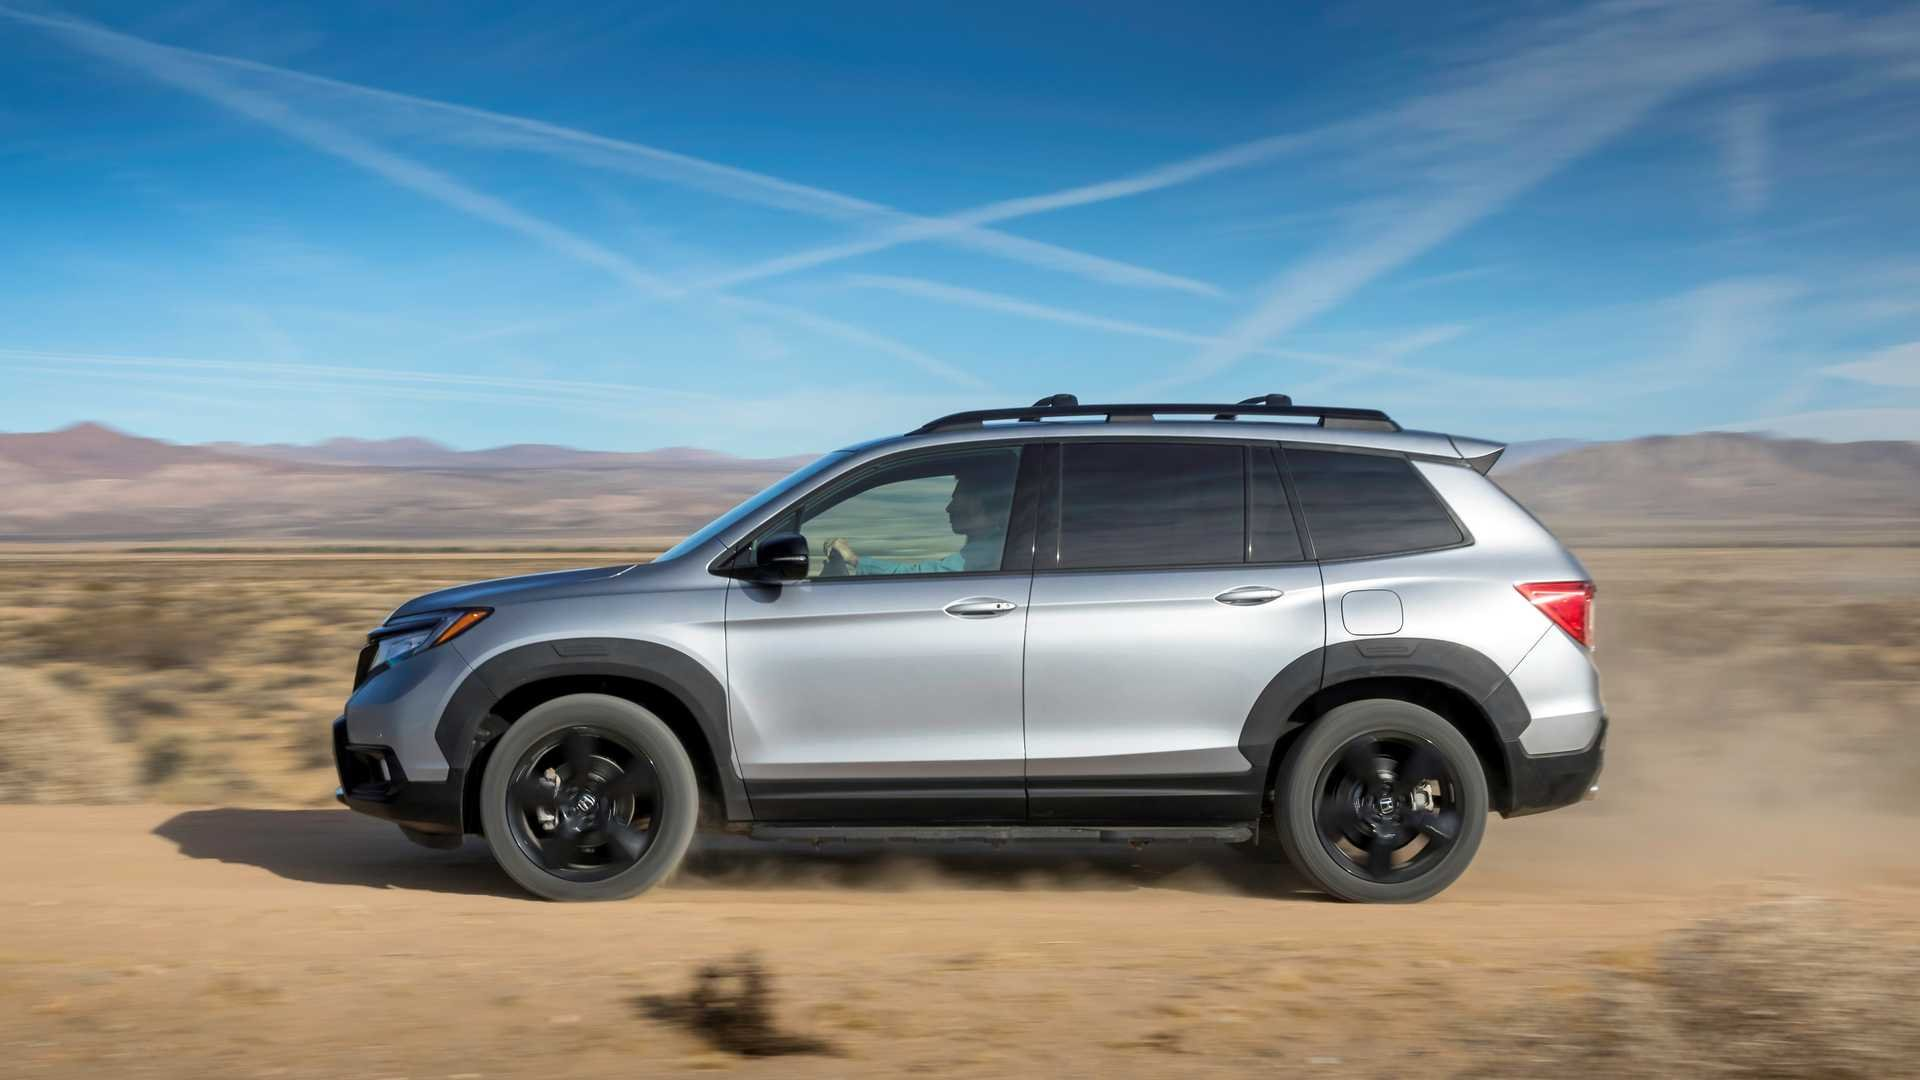 2019-honda-passport (8).jpg